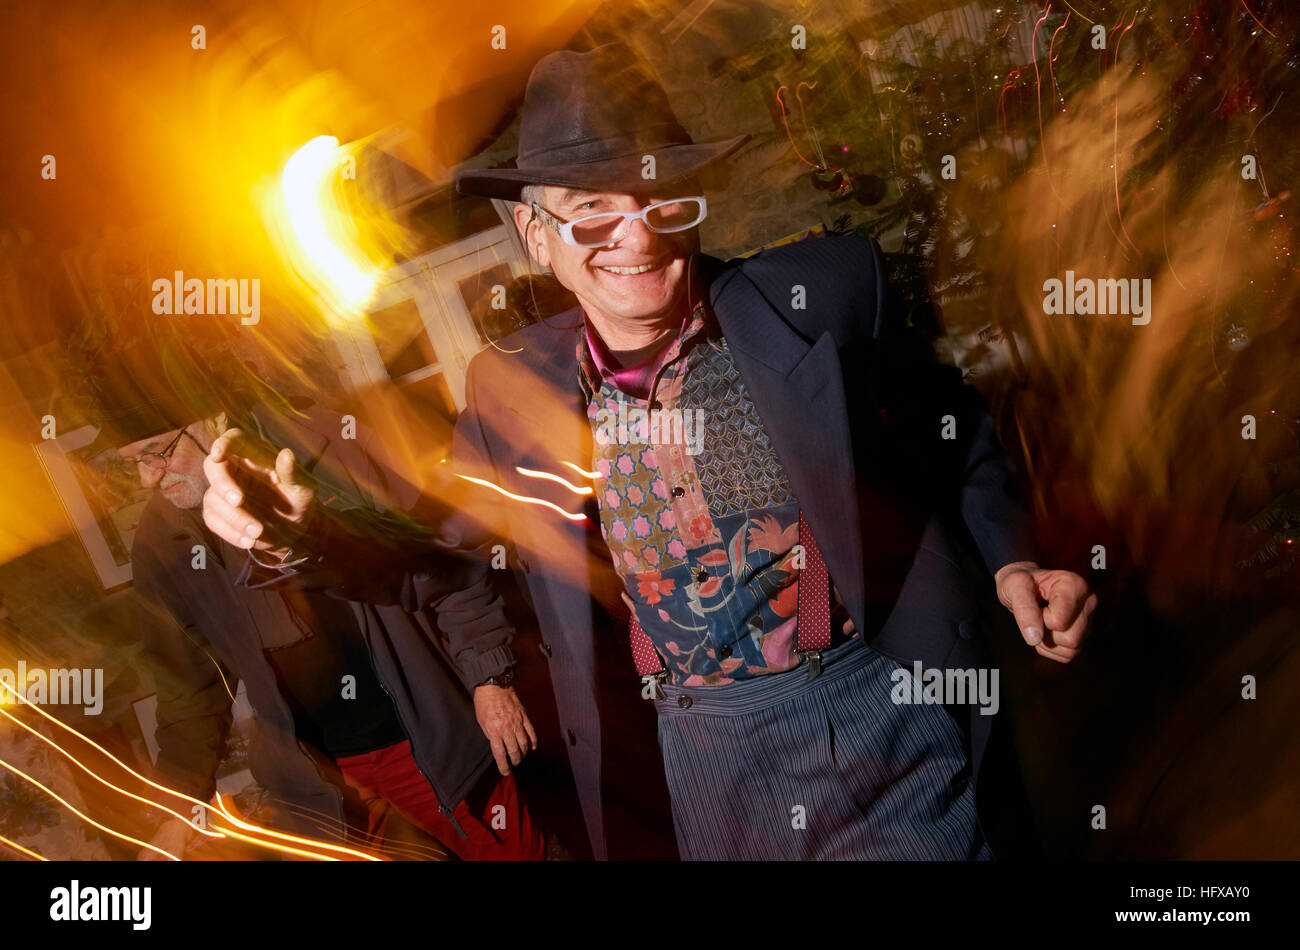 Middle aged man dancing at party dressed in braces and having fun - Stock Image